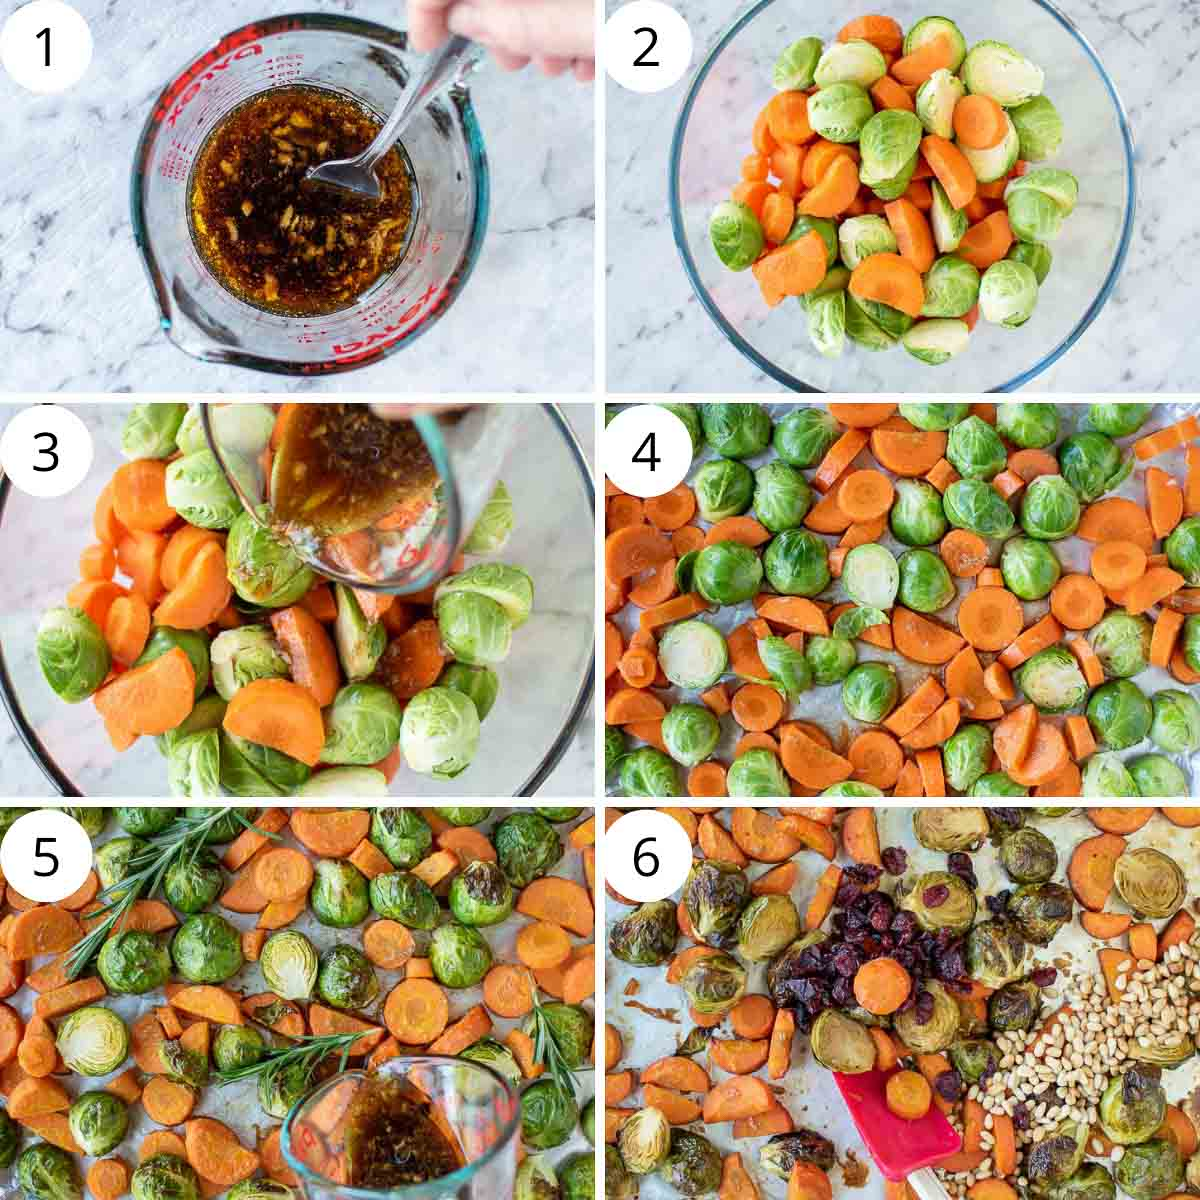 6 step photo collage showing how to make roasted brussels sprouts and carrots.